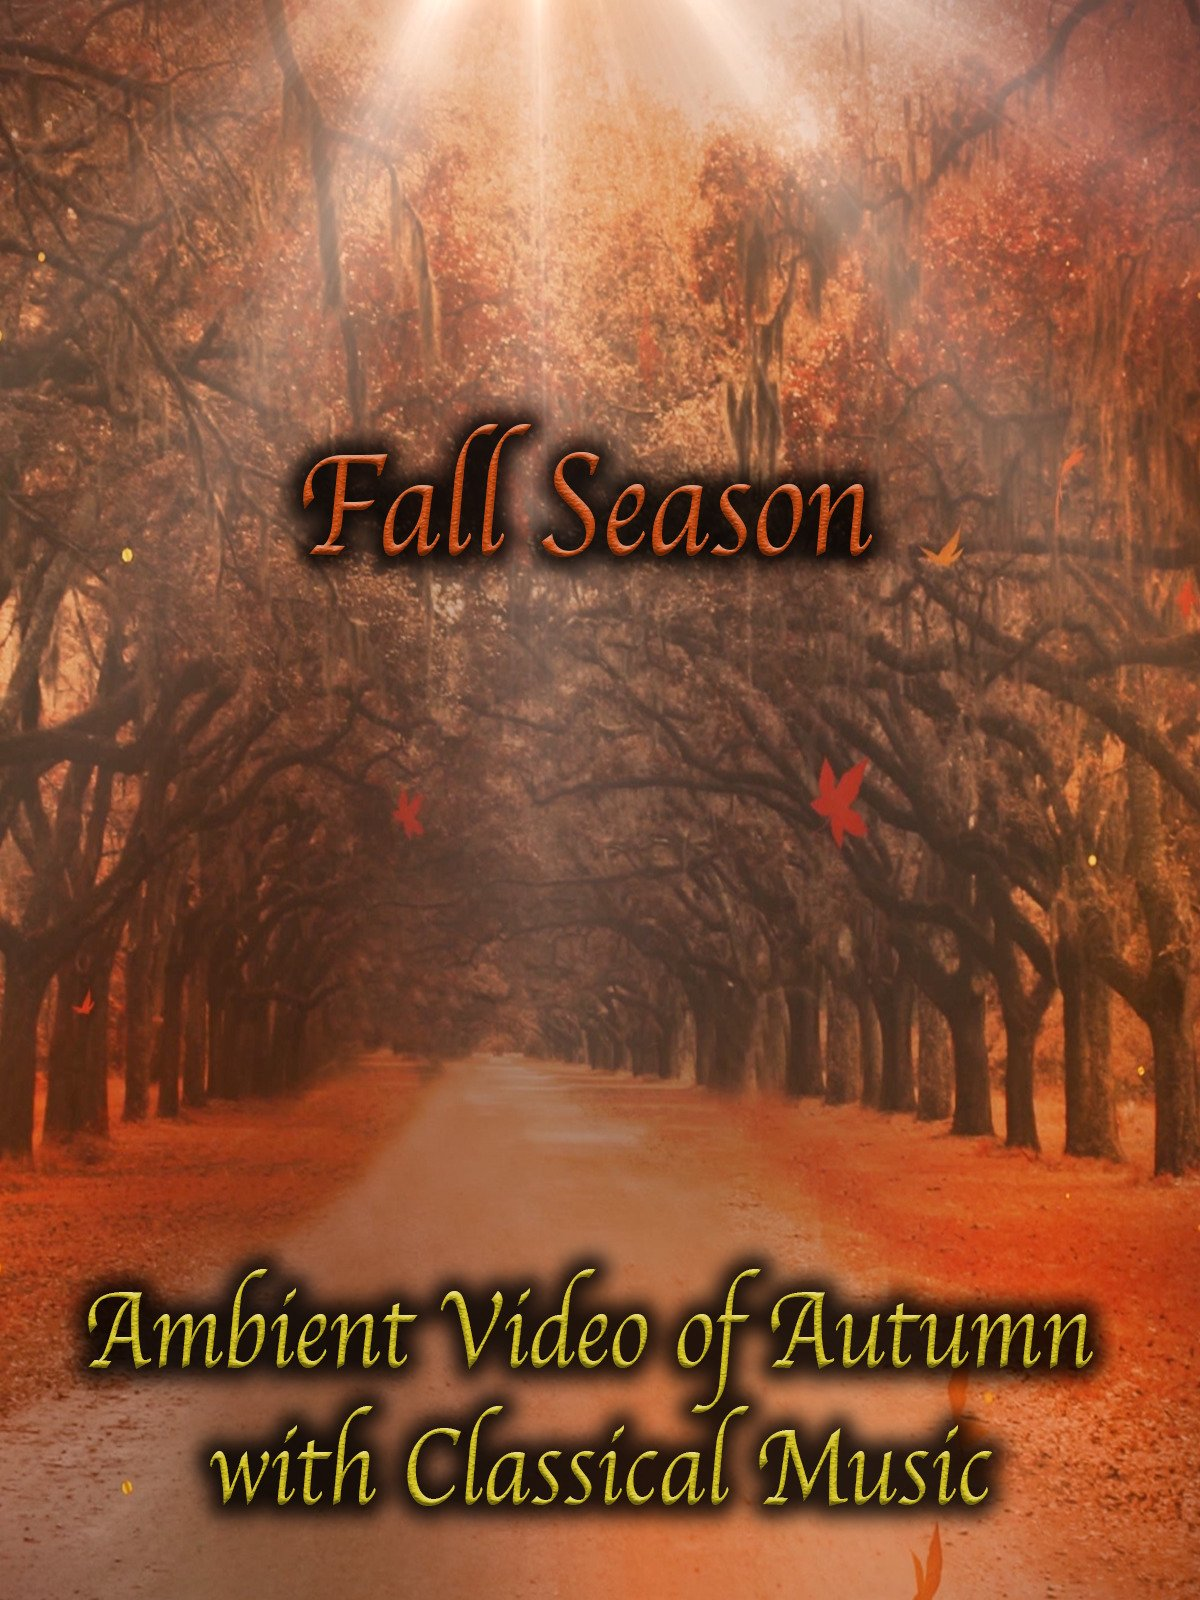 Fall Season Ambient Video of Autumn with Classical Music